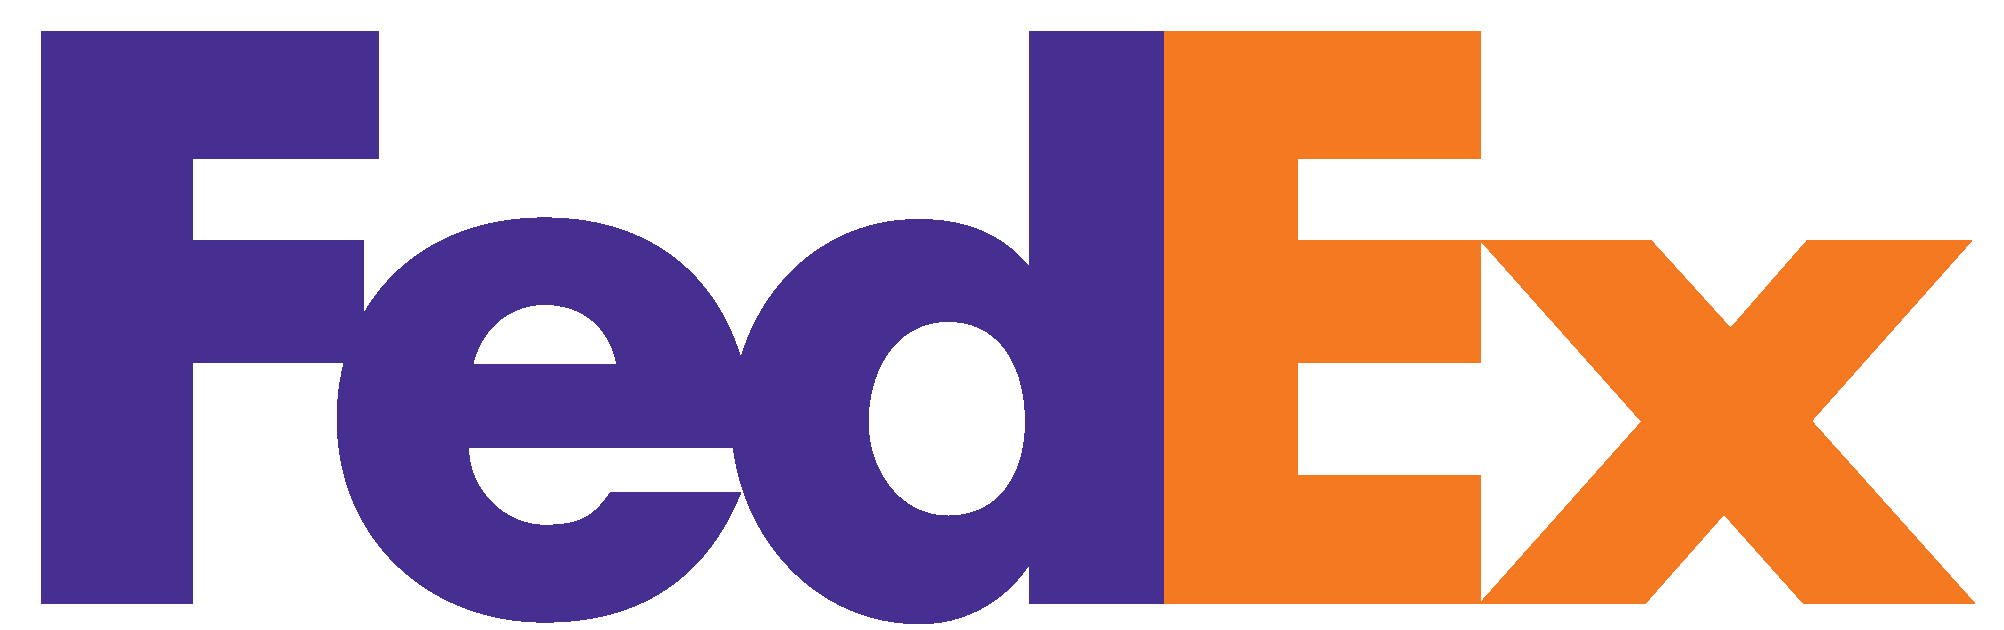 FedEx-Logo-HD